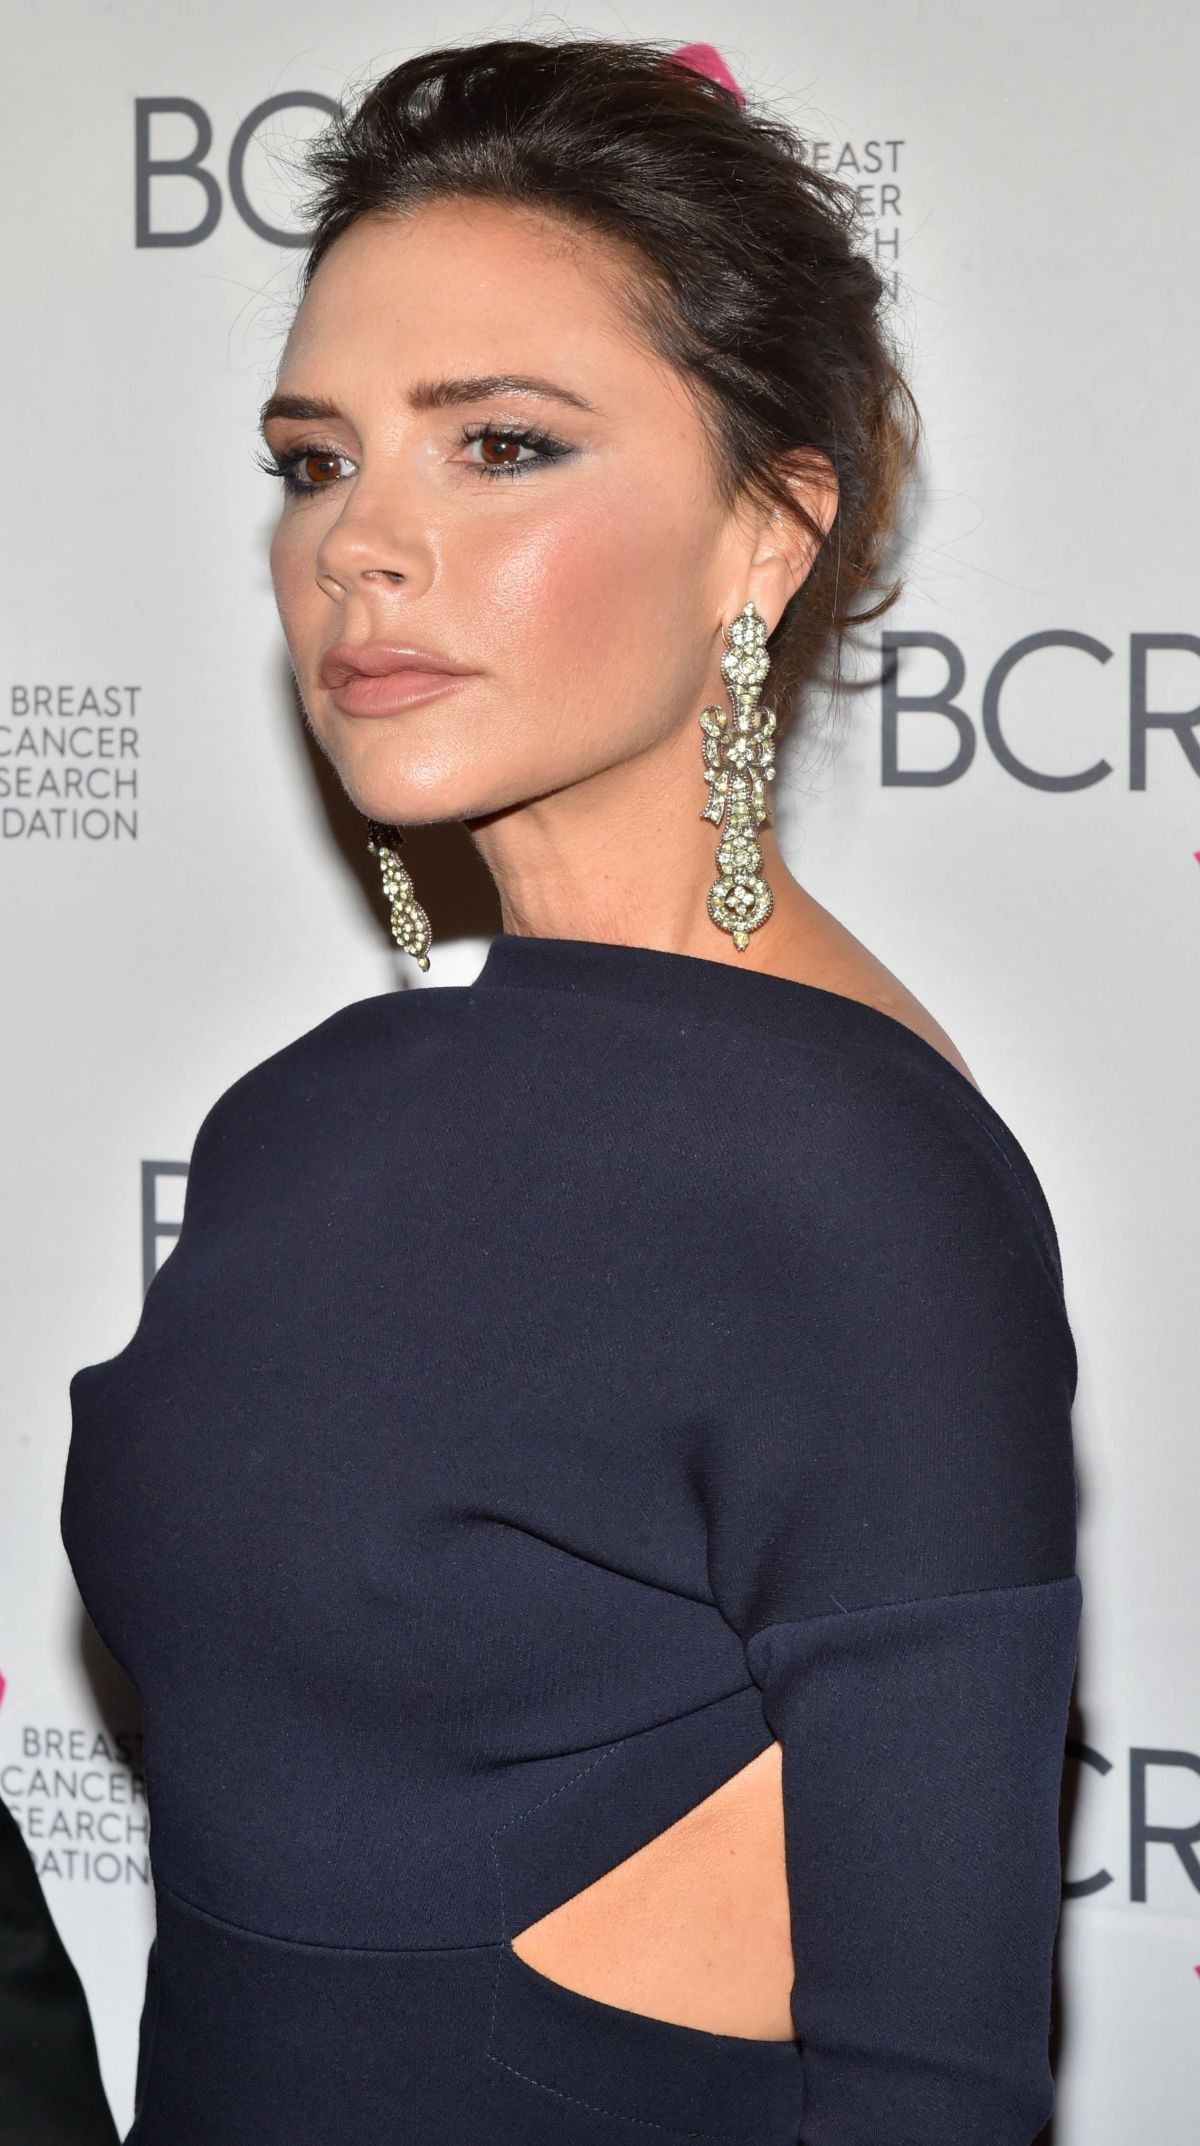 VICTORIA BECKHAM at The Hot Pink Party in New York 05/12 ... Victoria Beckham